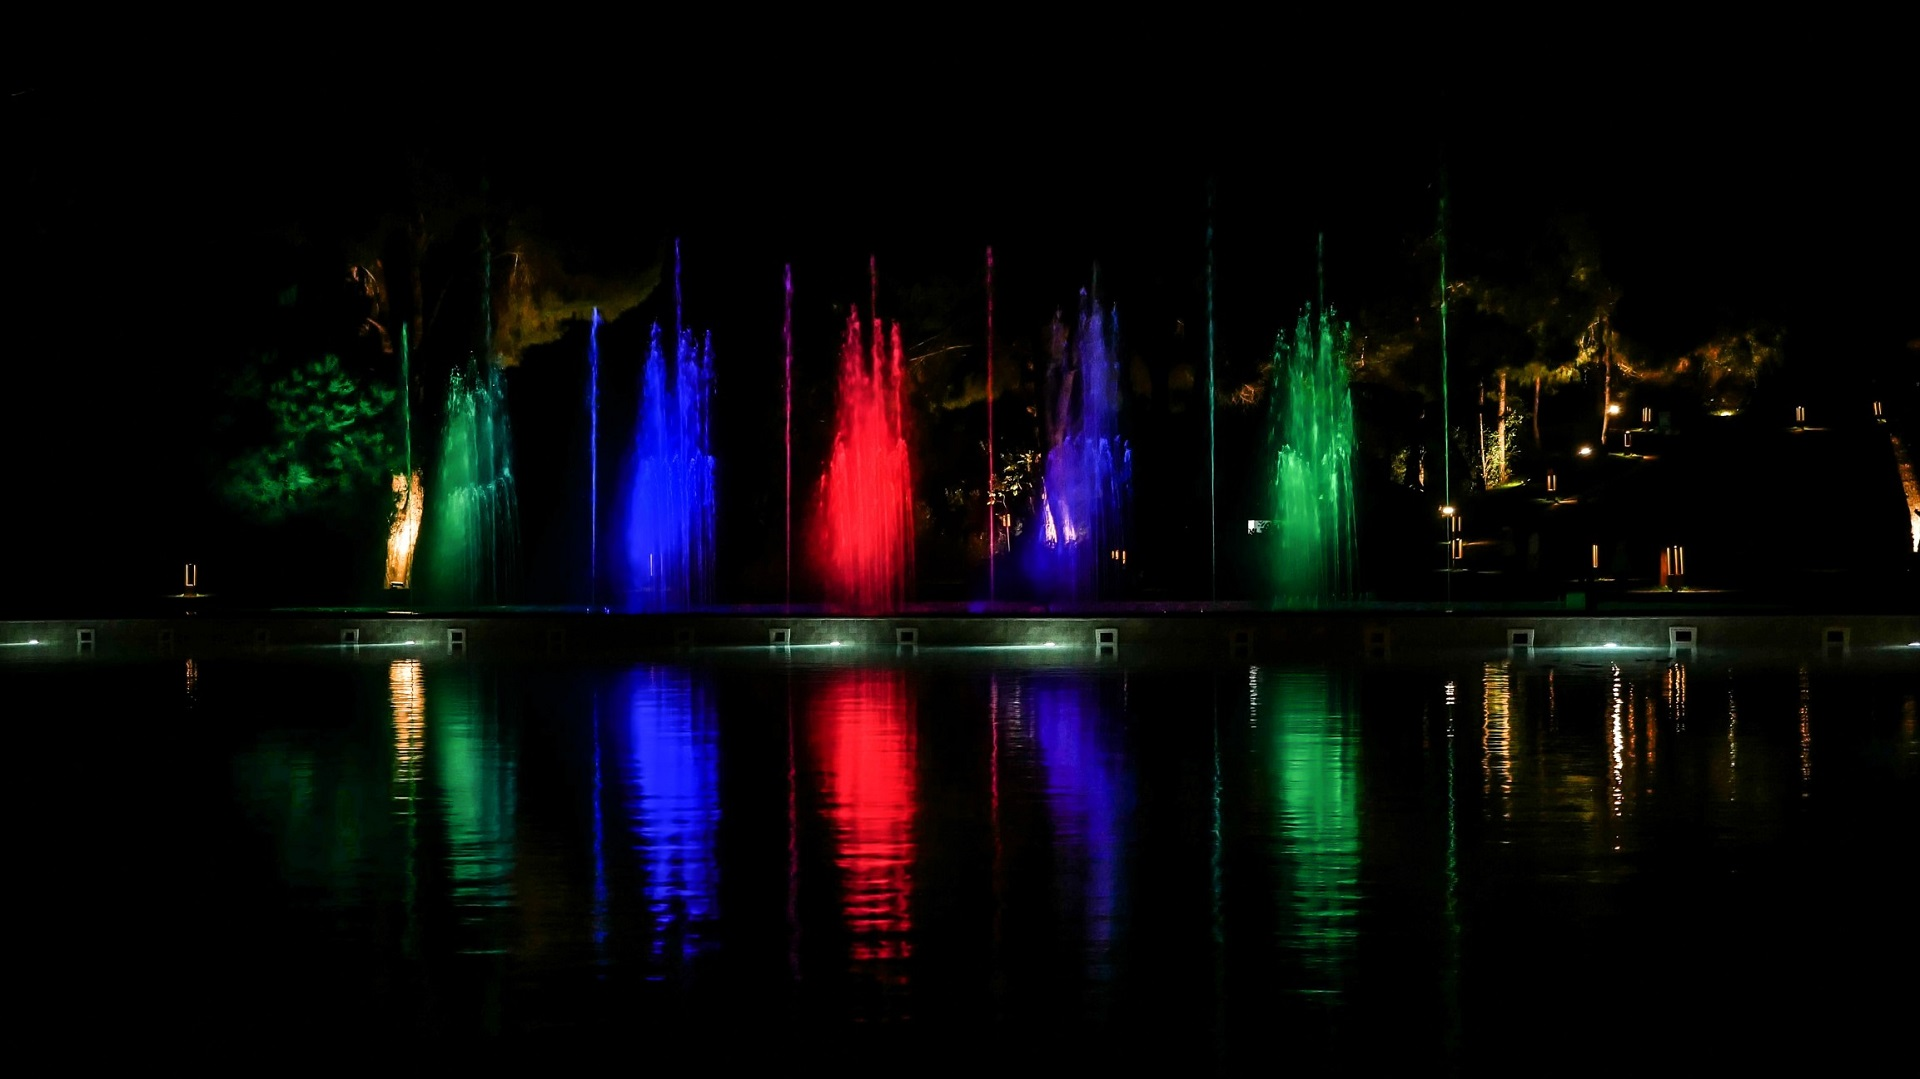 Fountain At Night with Liights